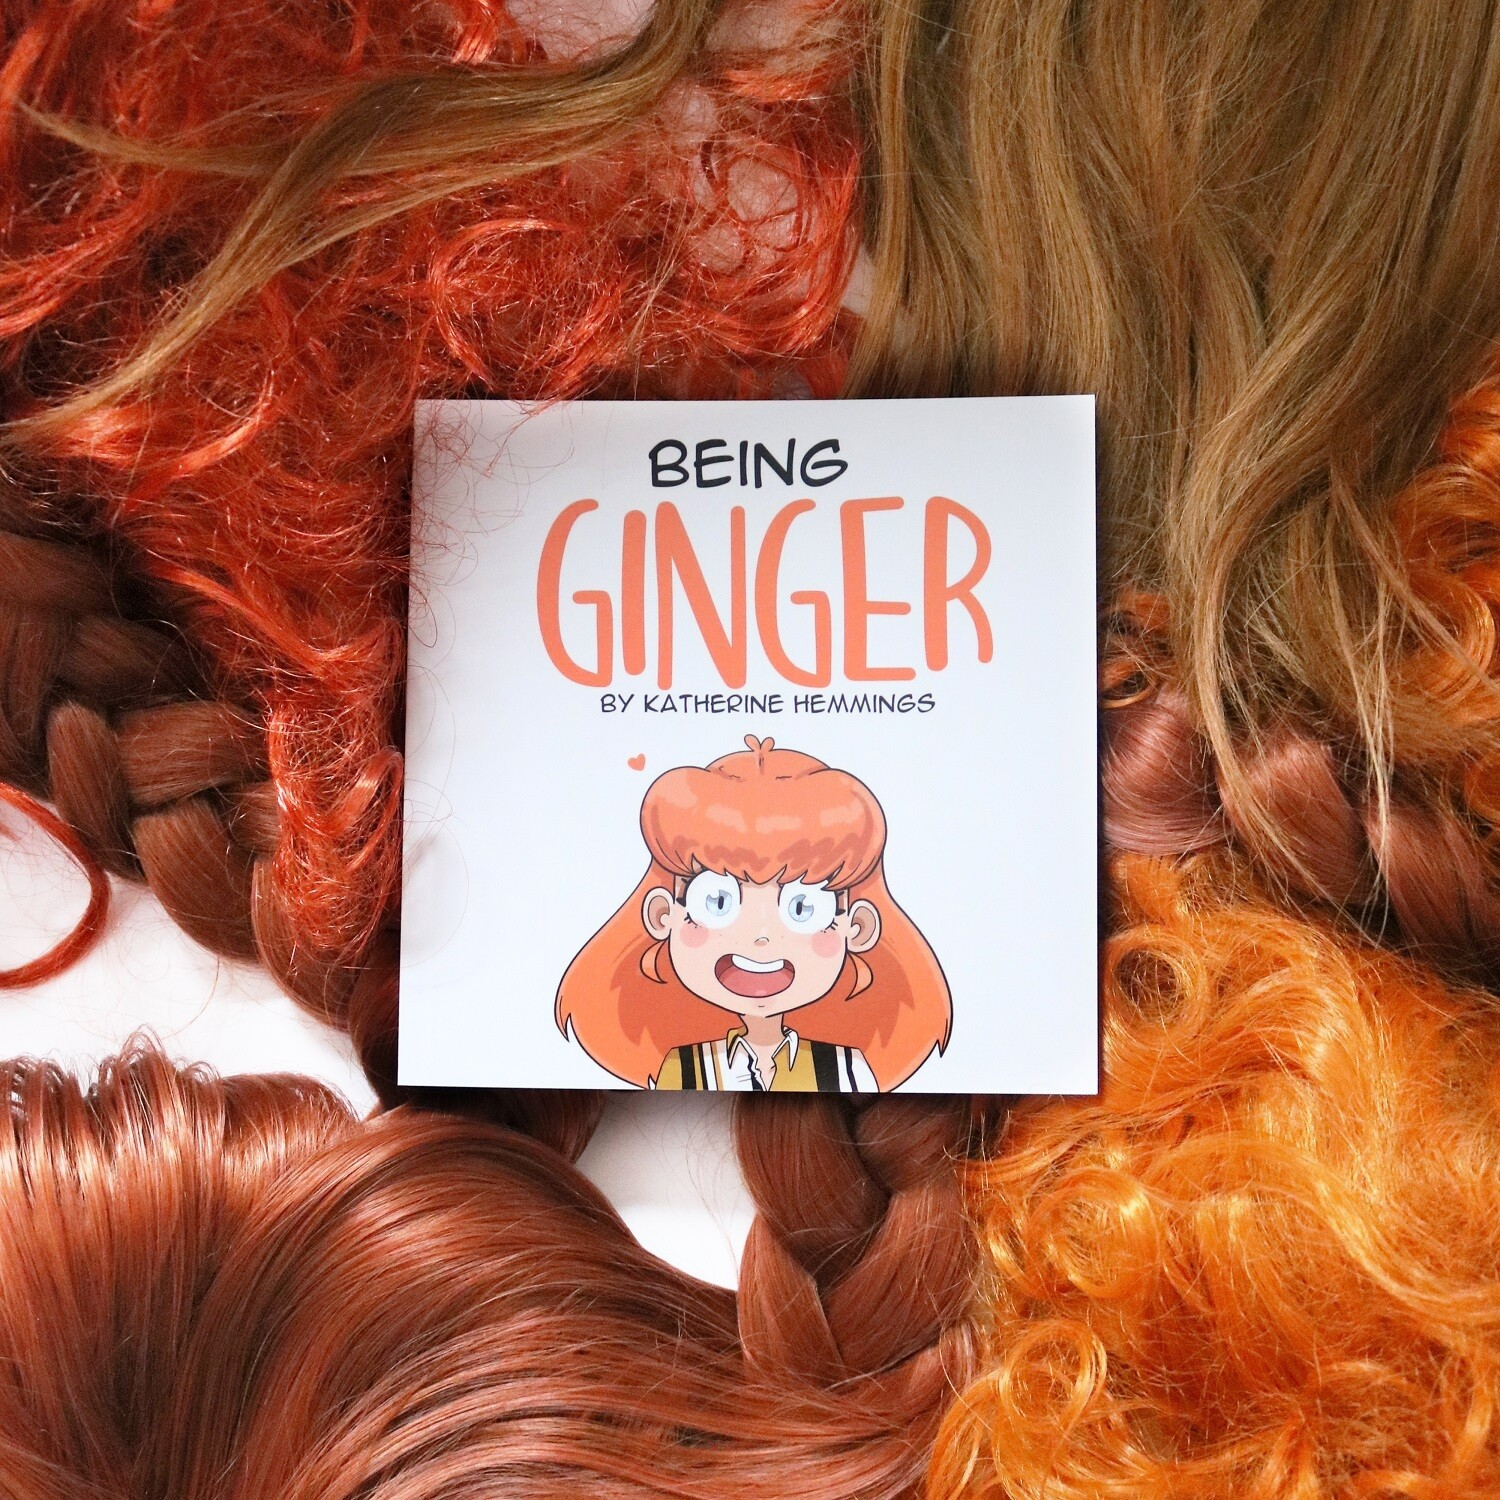 'Being Ginger' Comic Book by Katherine Hemmings